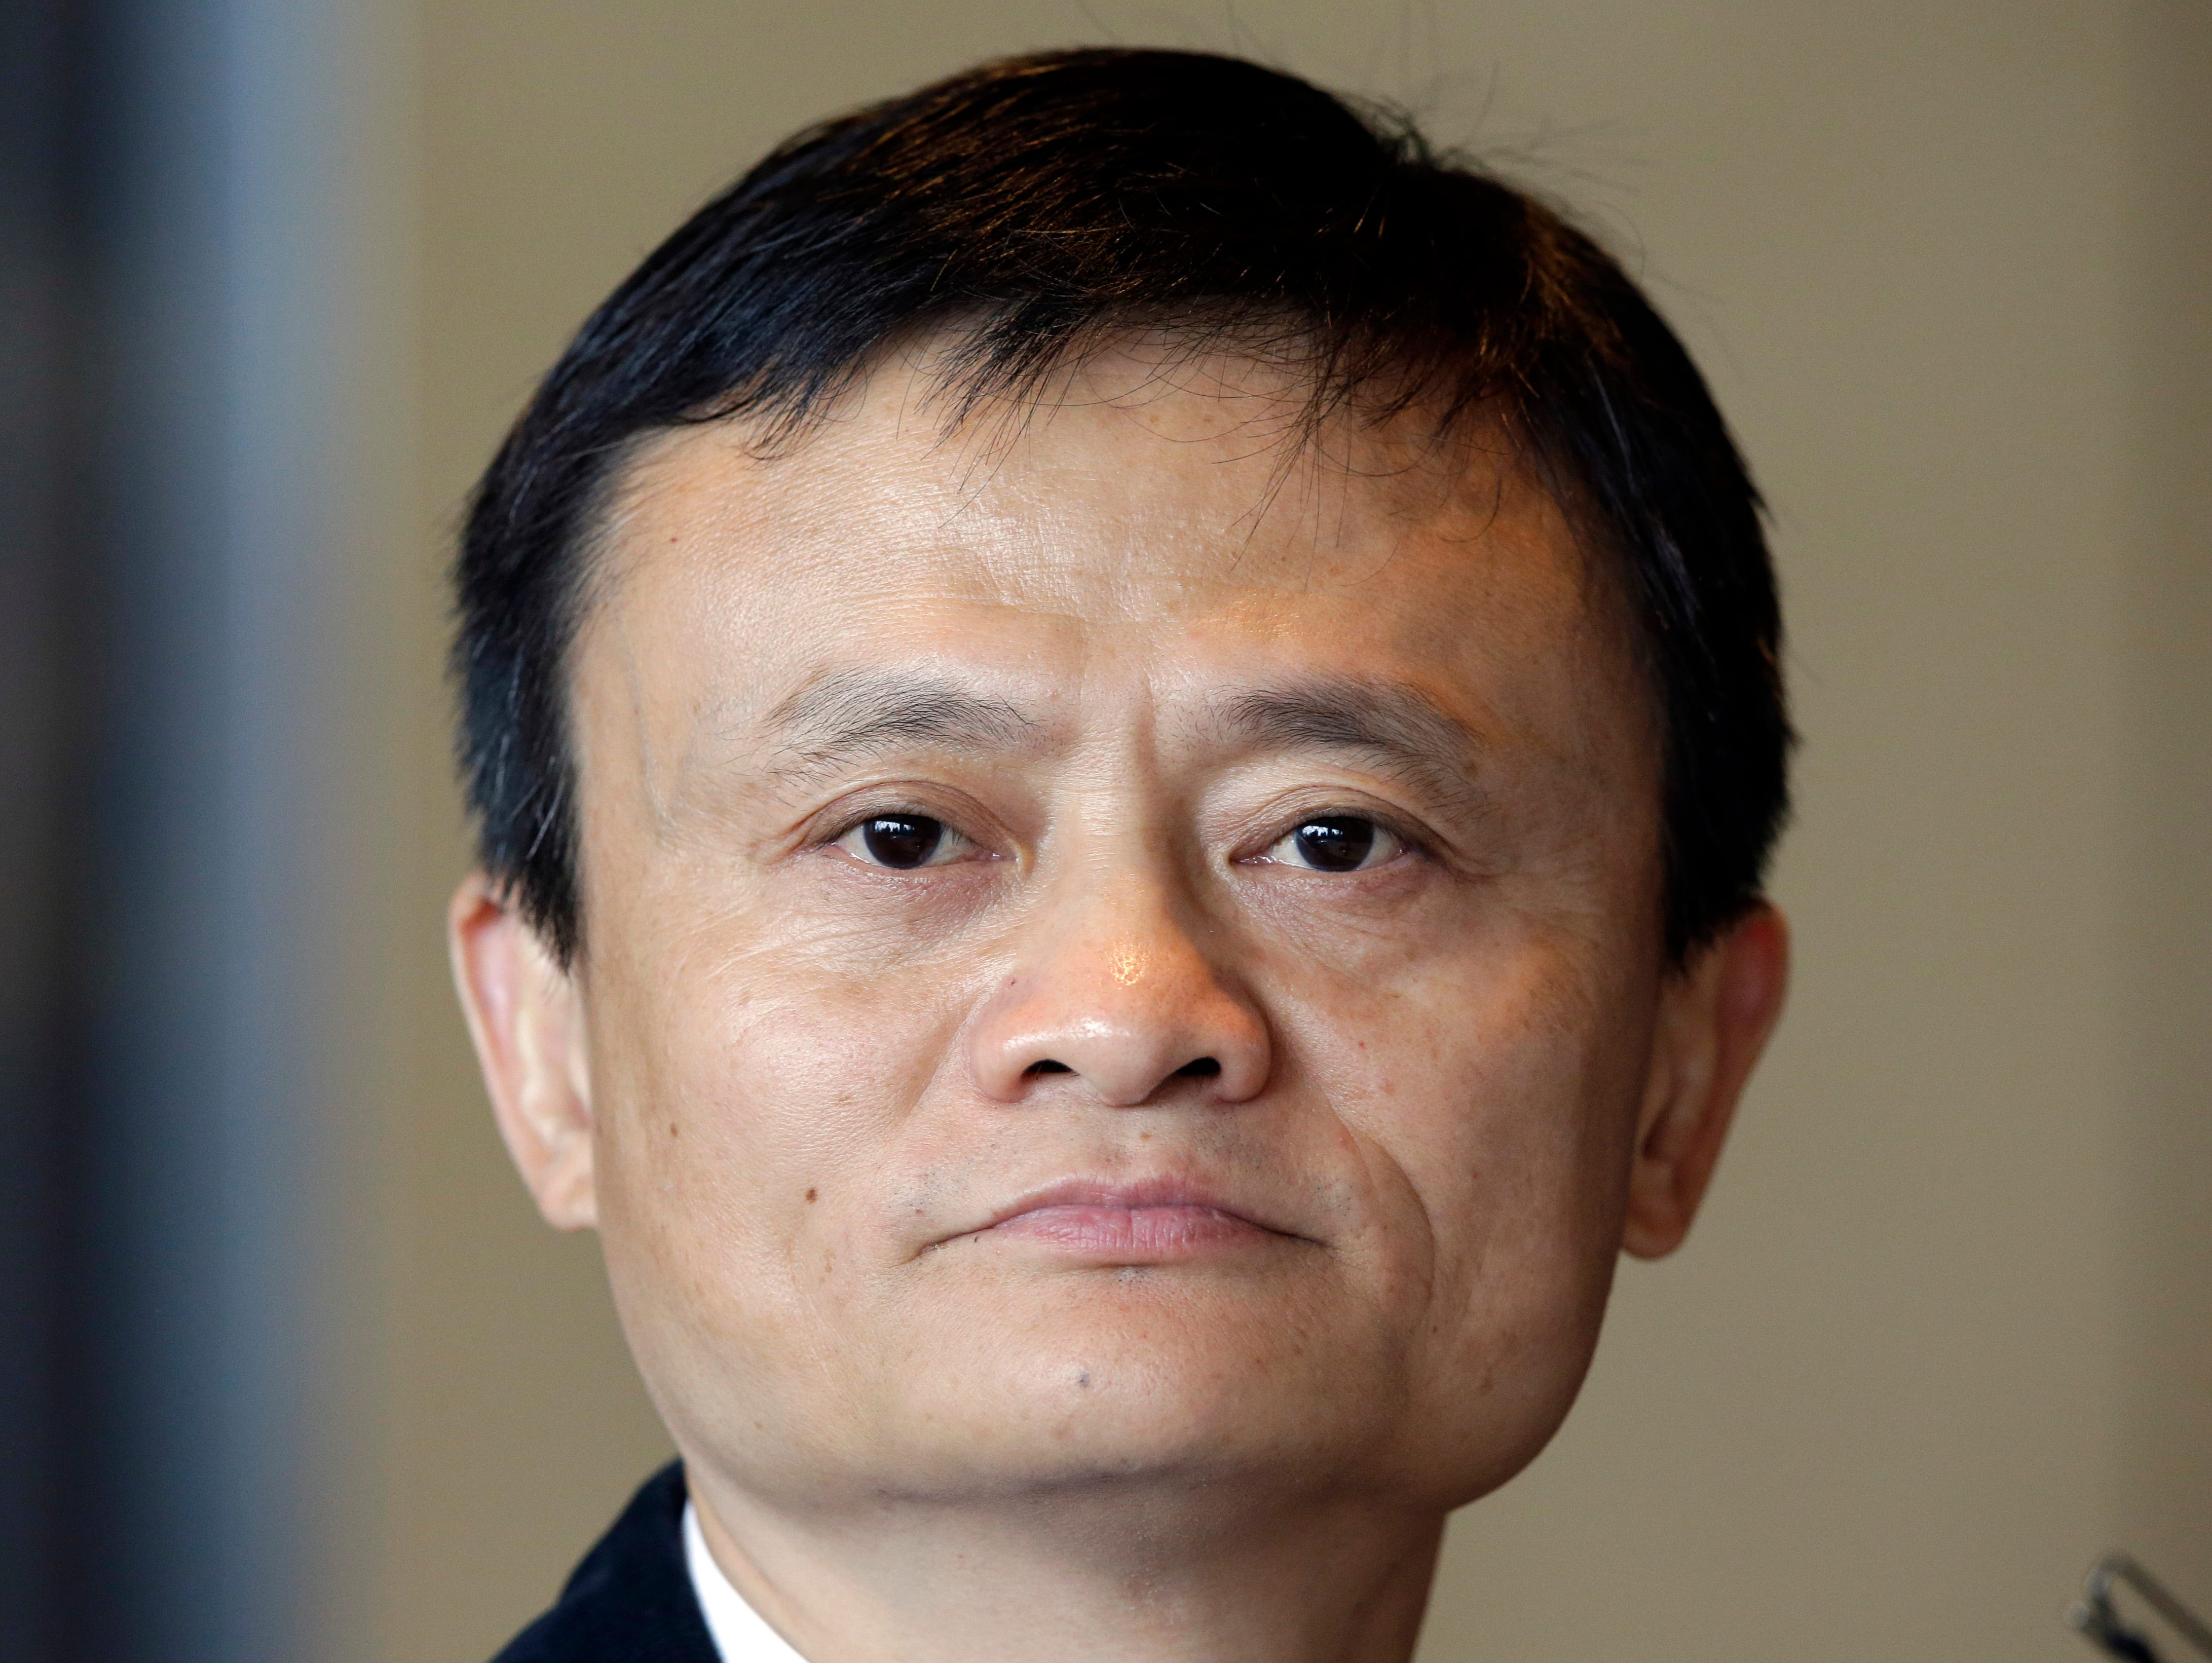 Alibaba Group Executive Chairman Jack Ma waits for a reporter's question during a news conference in Seoul, South Korea, Tuesday, May 19, 2015.